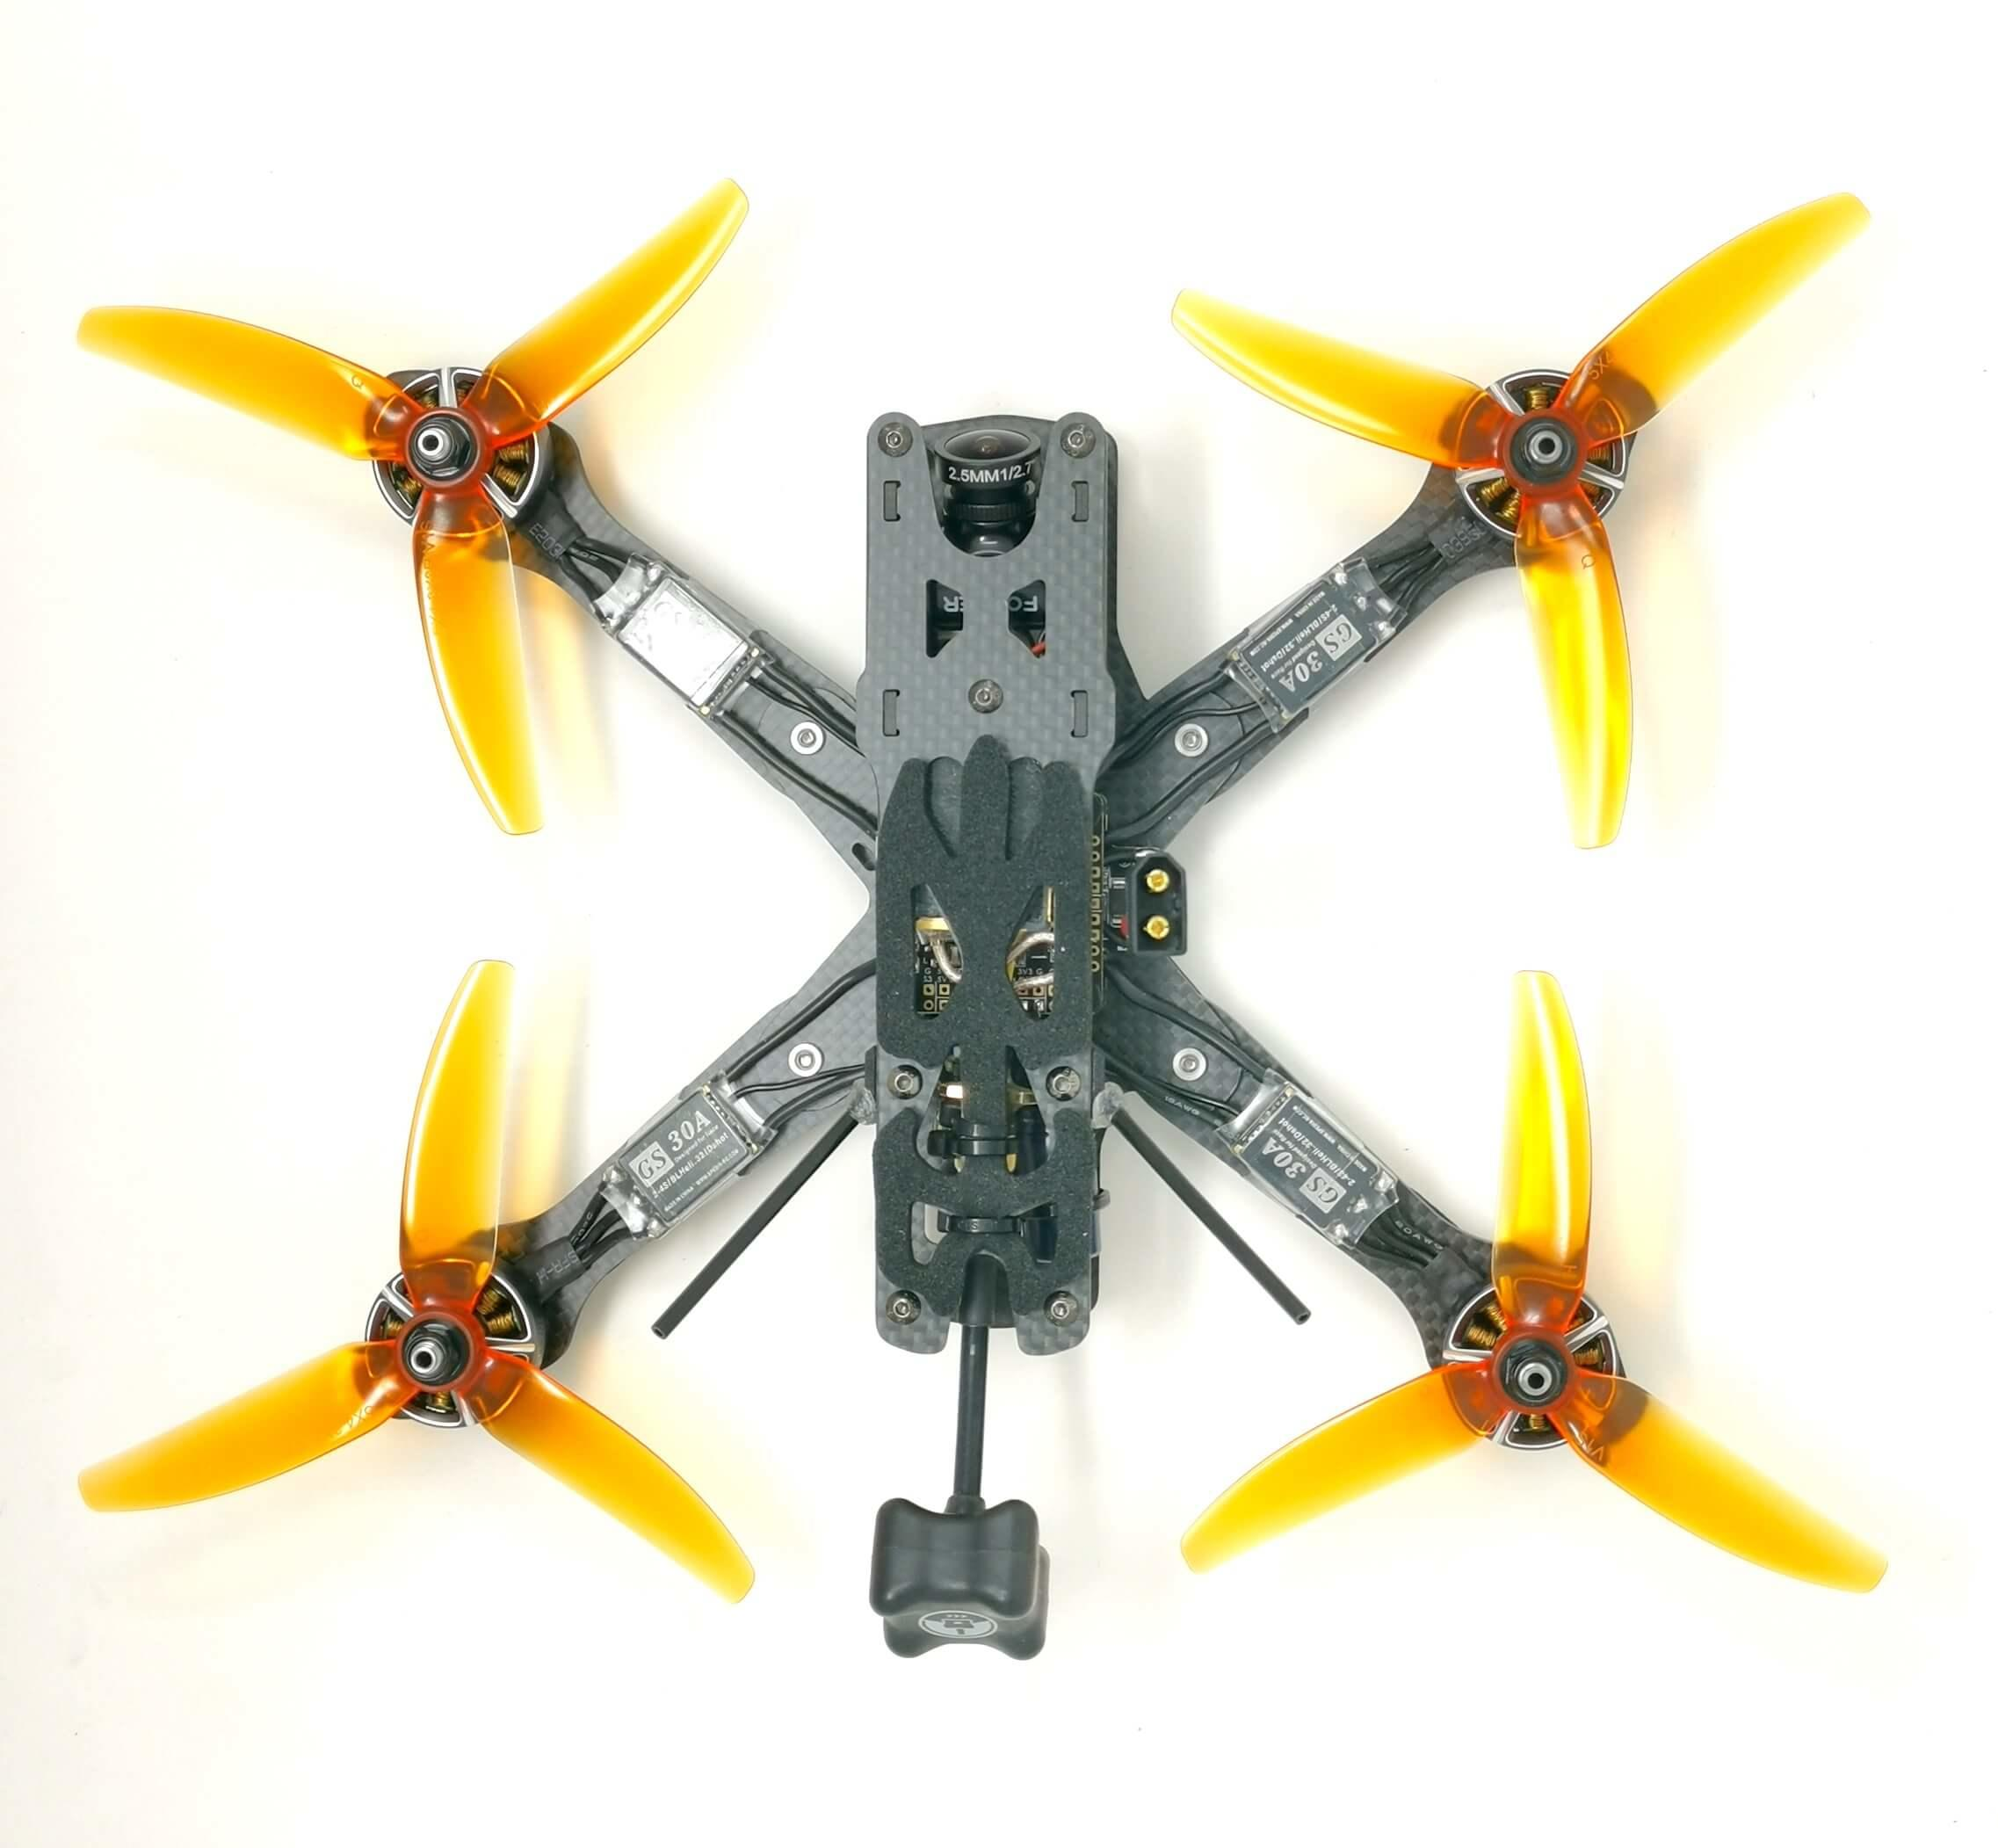 Tom Smith custom fpv drone racing freestyle build Reverb quadcopters.co.uk